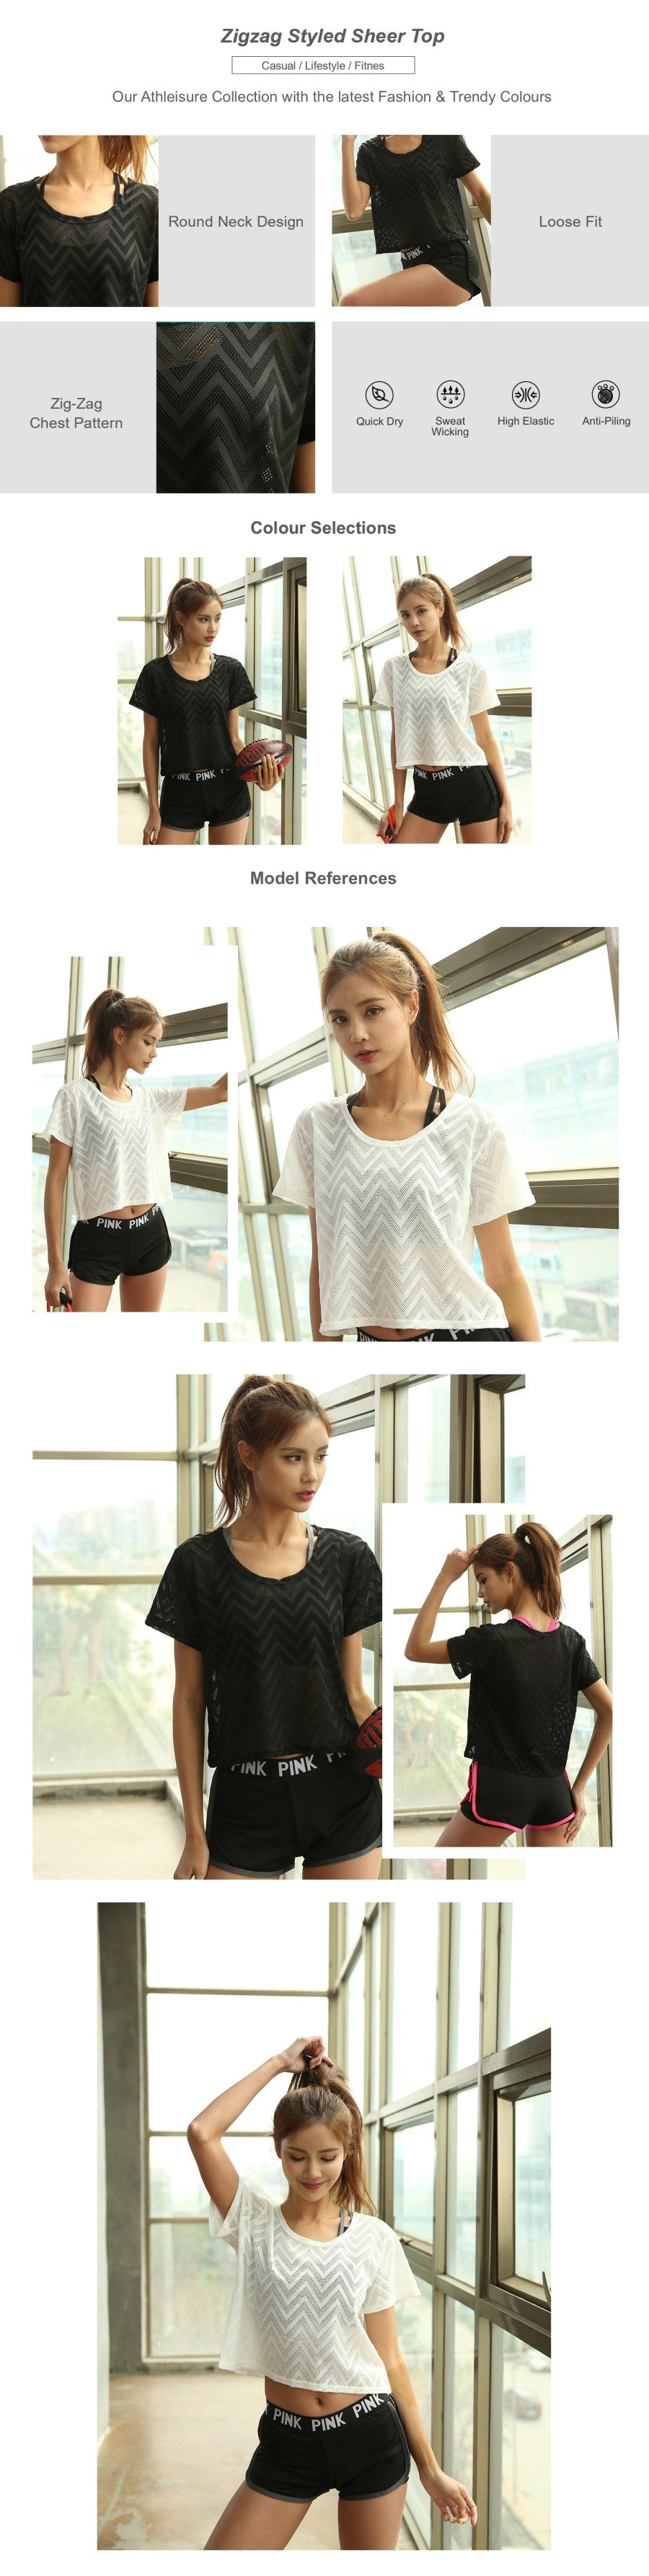 Zigzag Styled Sheer Top